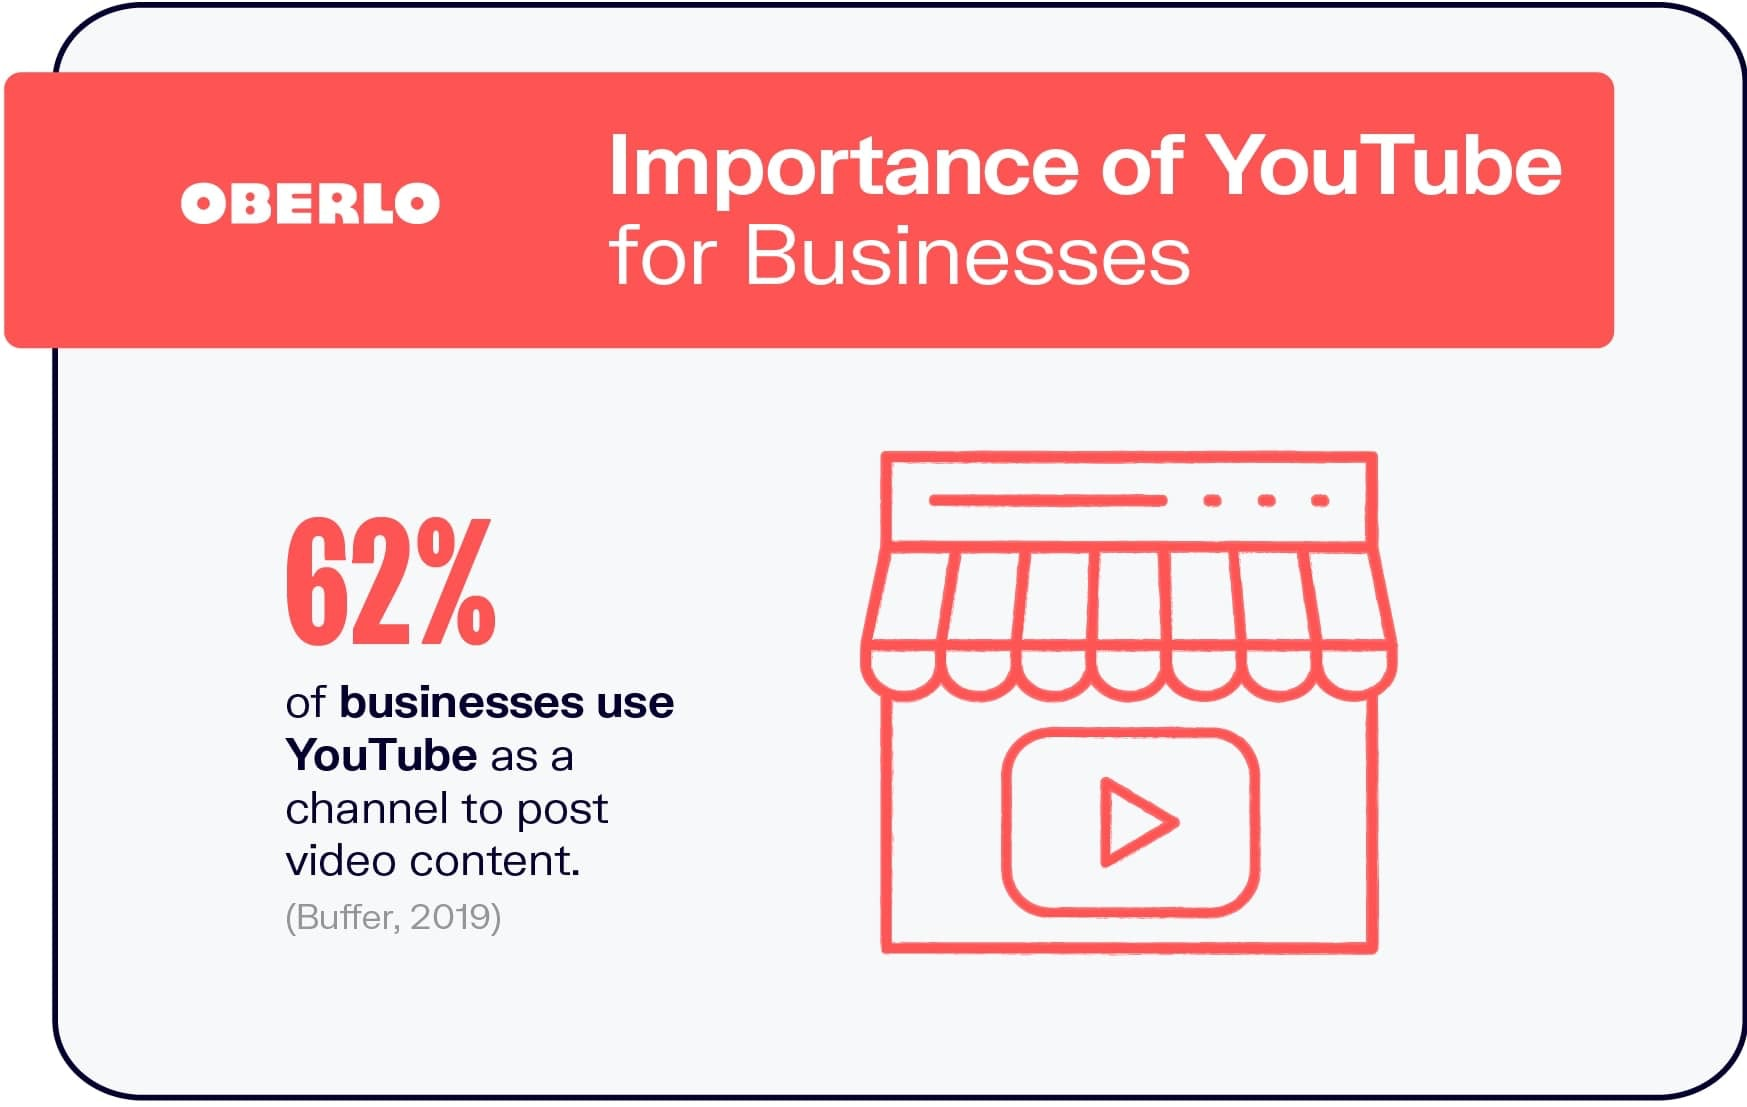 Importance of YouTube for Businesses